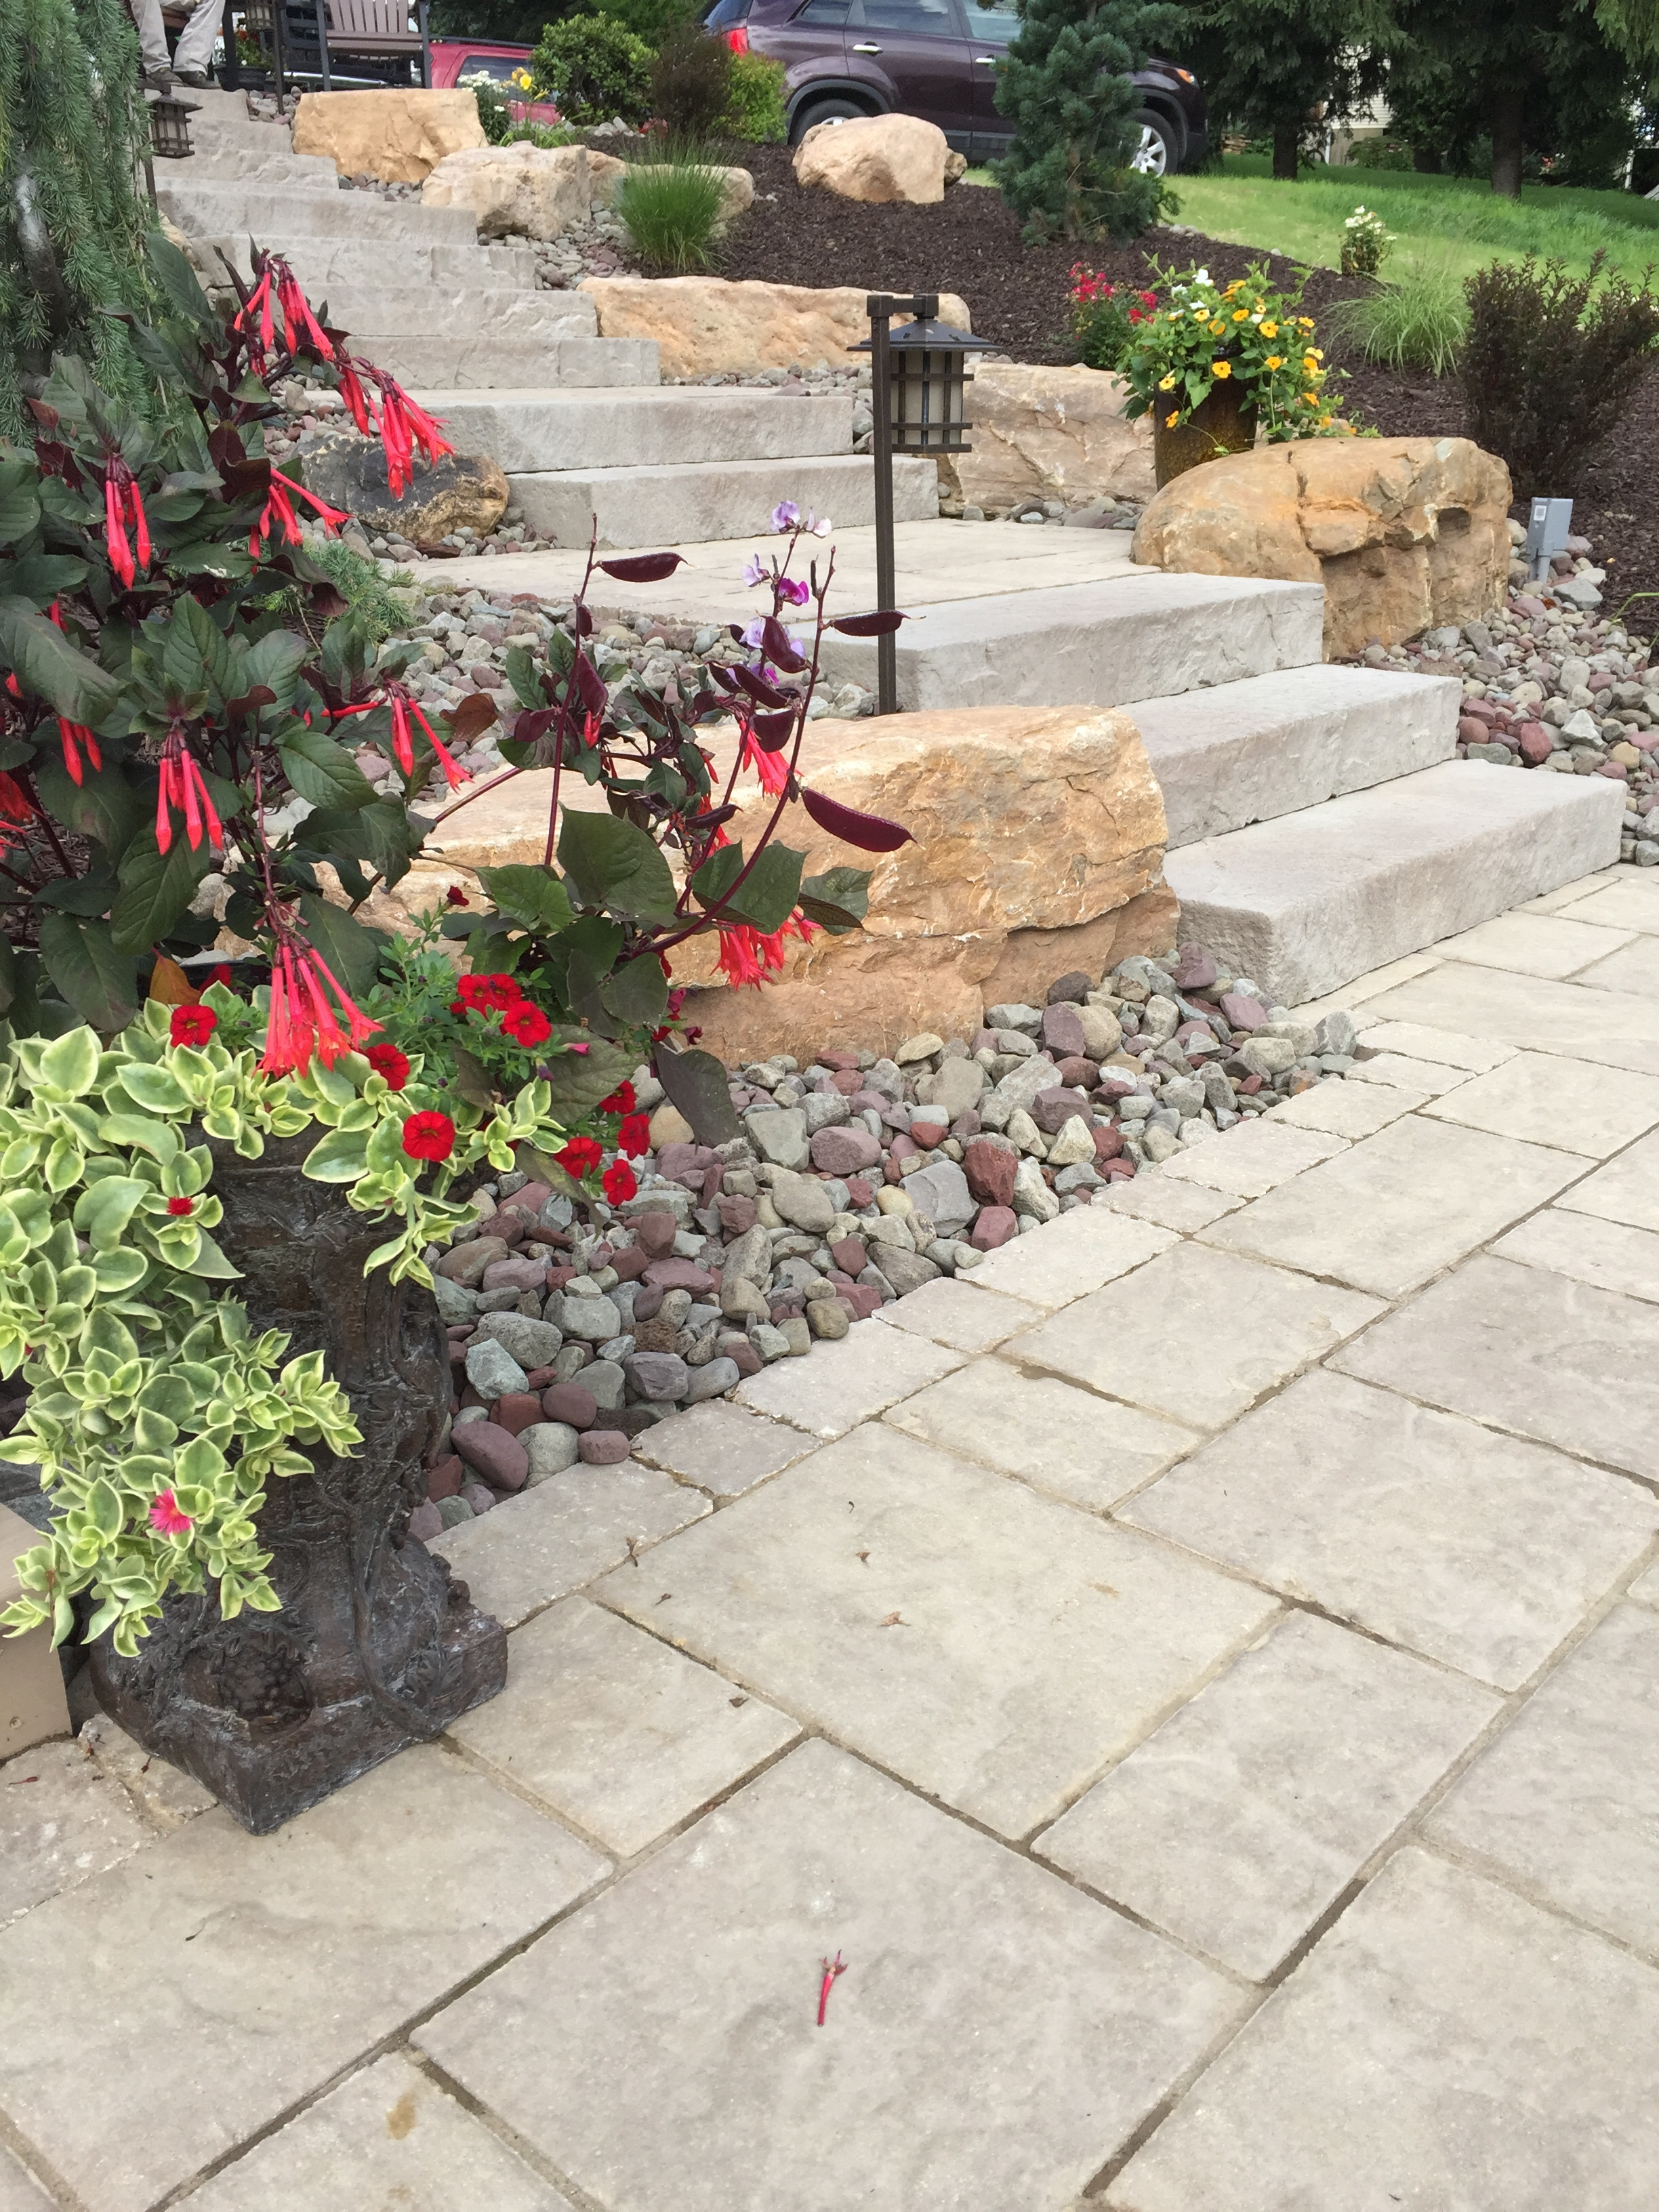 10 Plantings to Add Color to Your Pottsville, PA, Landscape Design